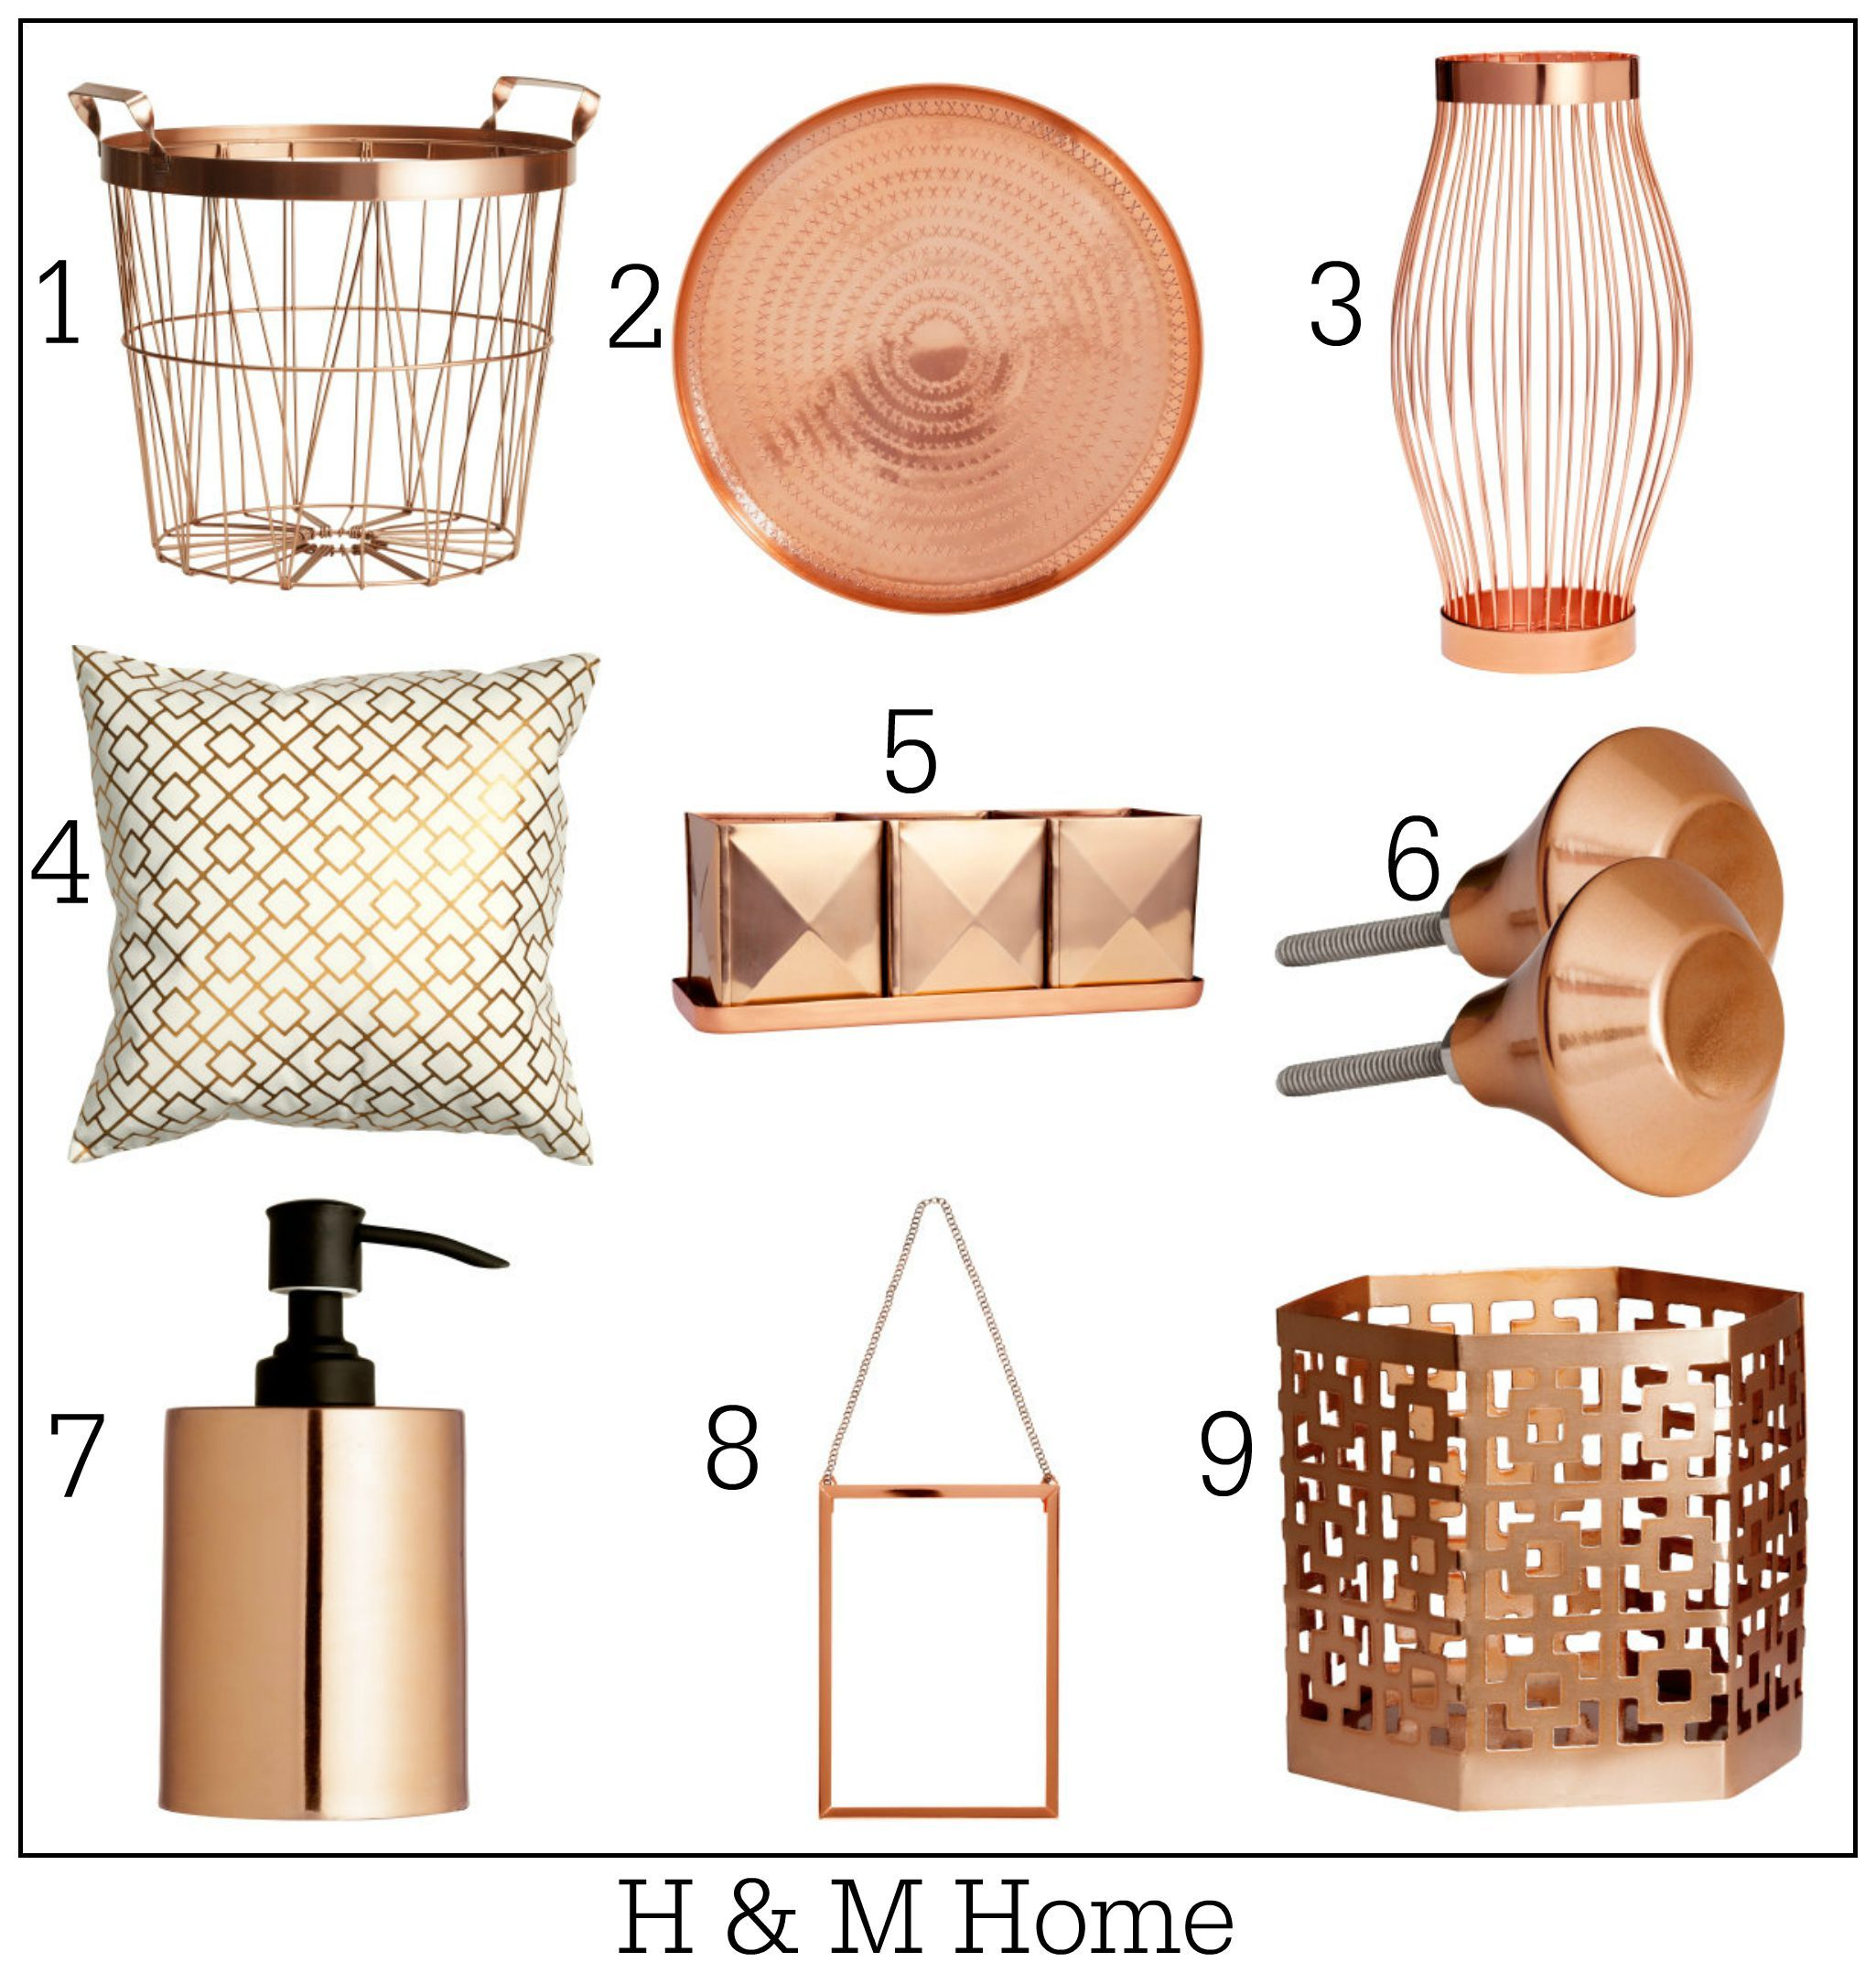 Interior homeware design - 100 Ways To Use Copper In Your Home